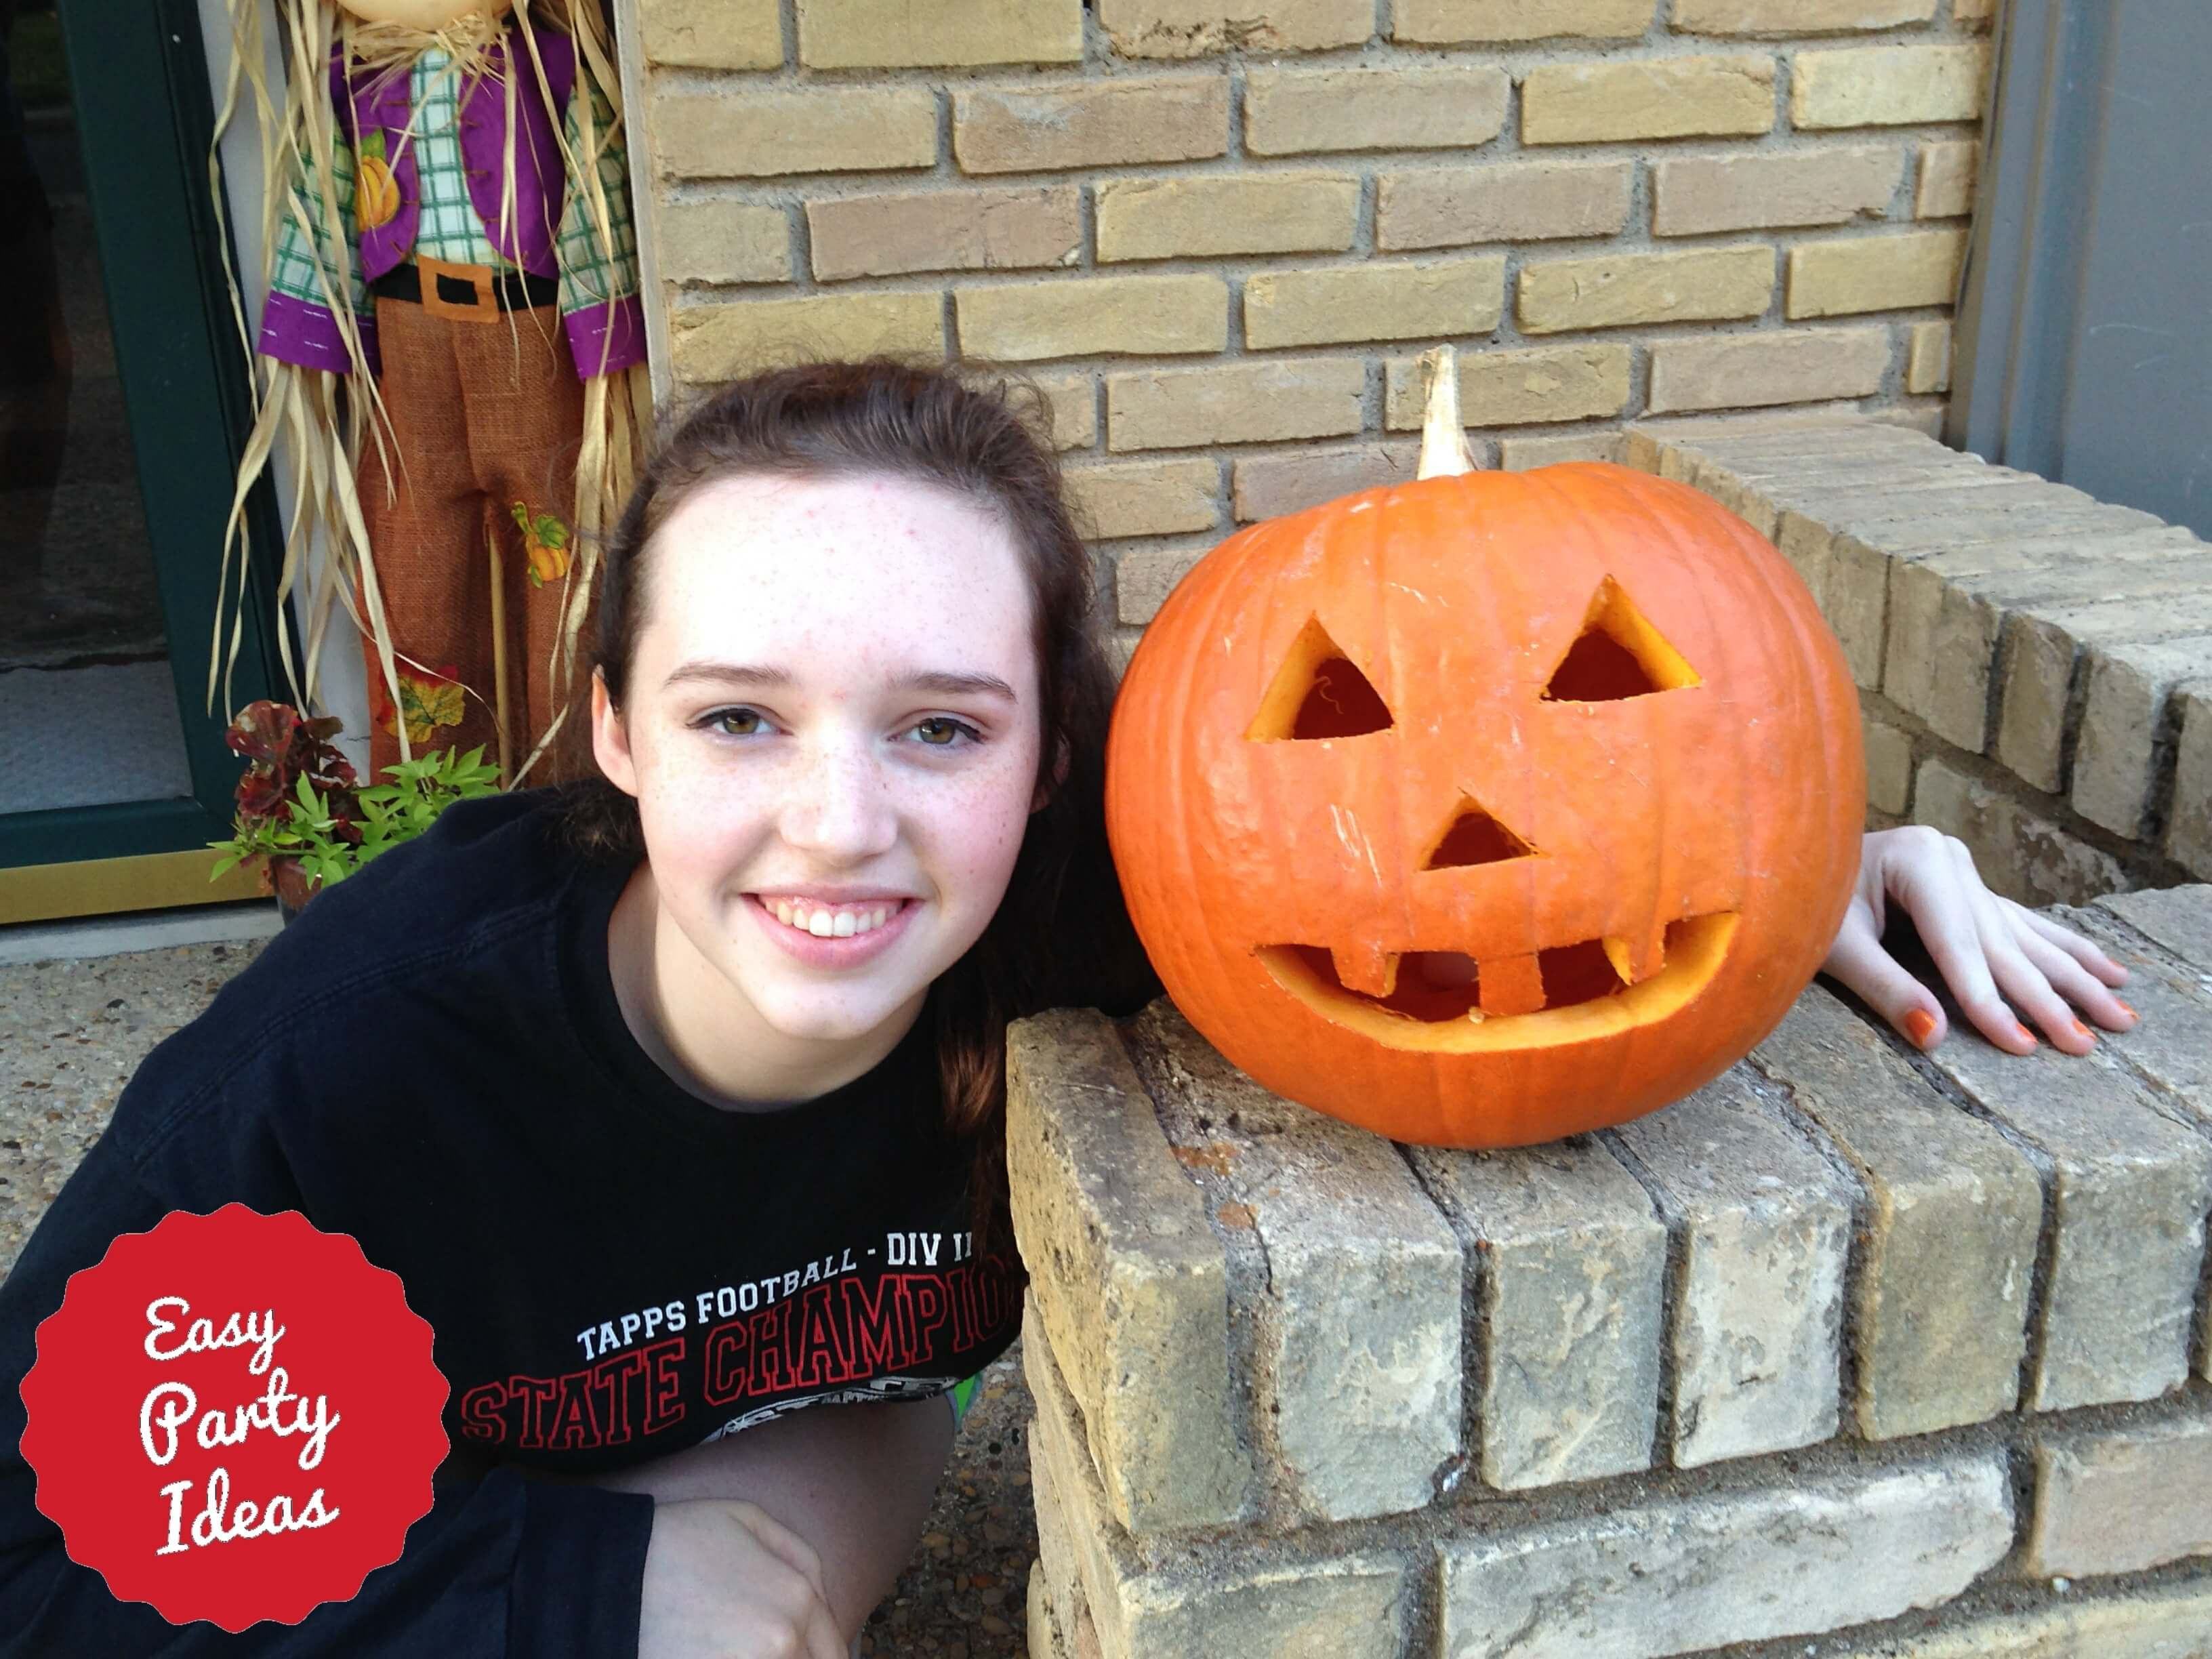 Teen with pumpkin